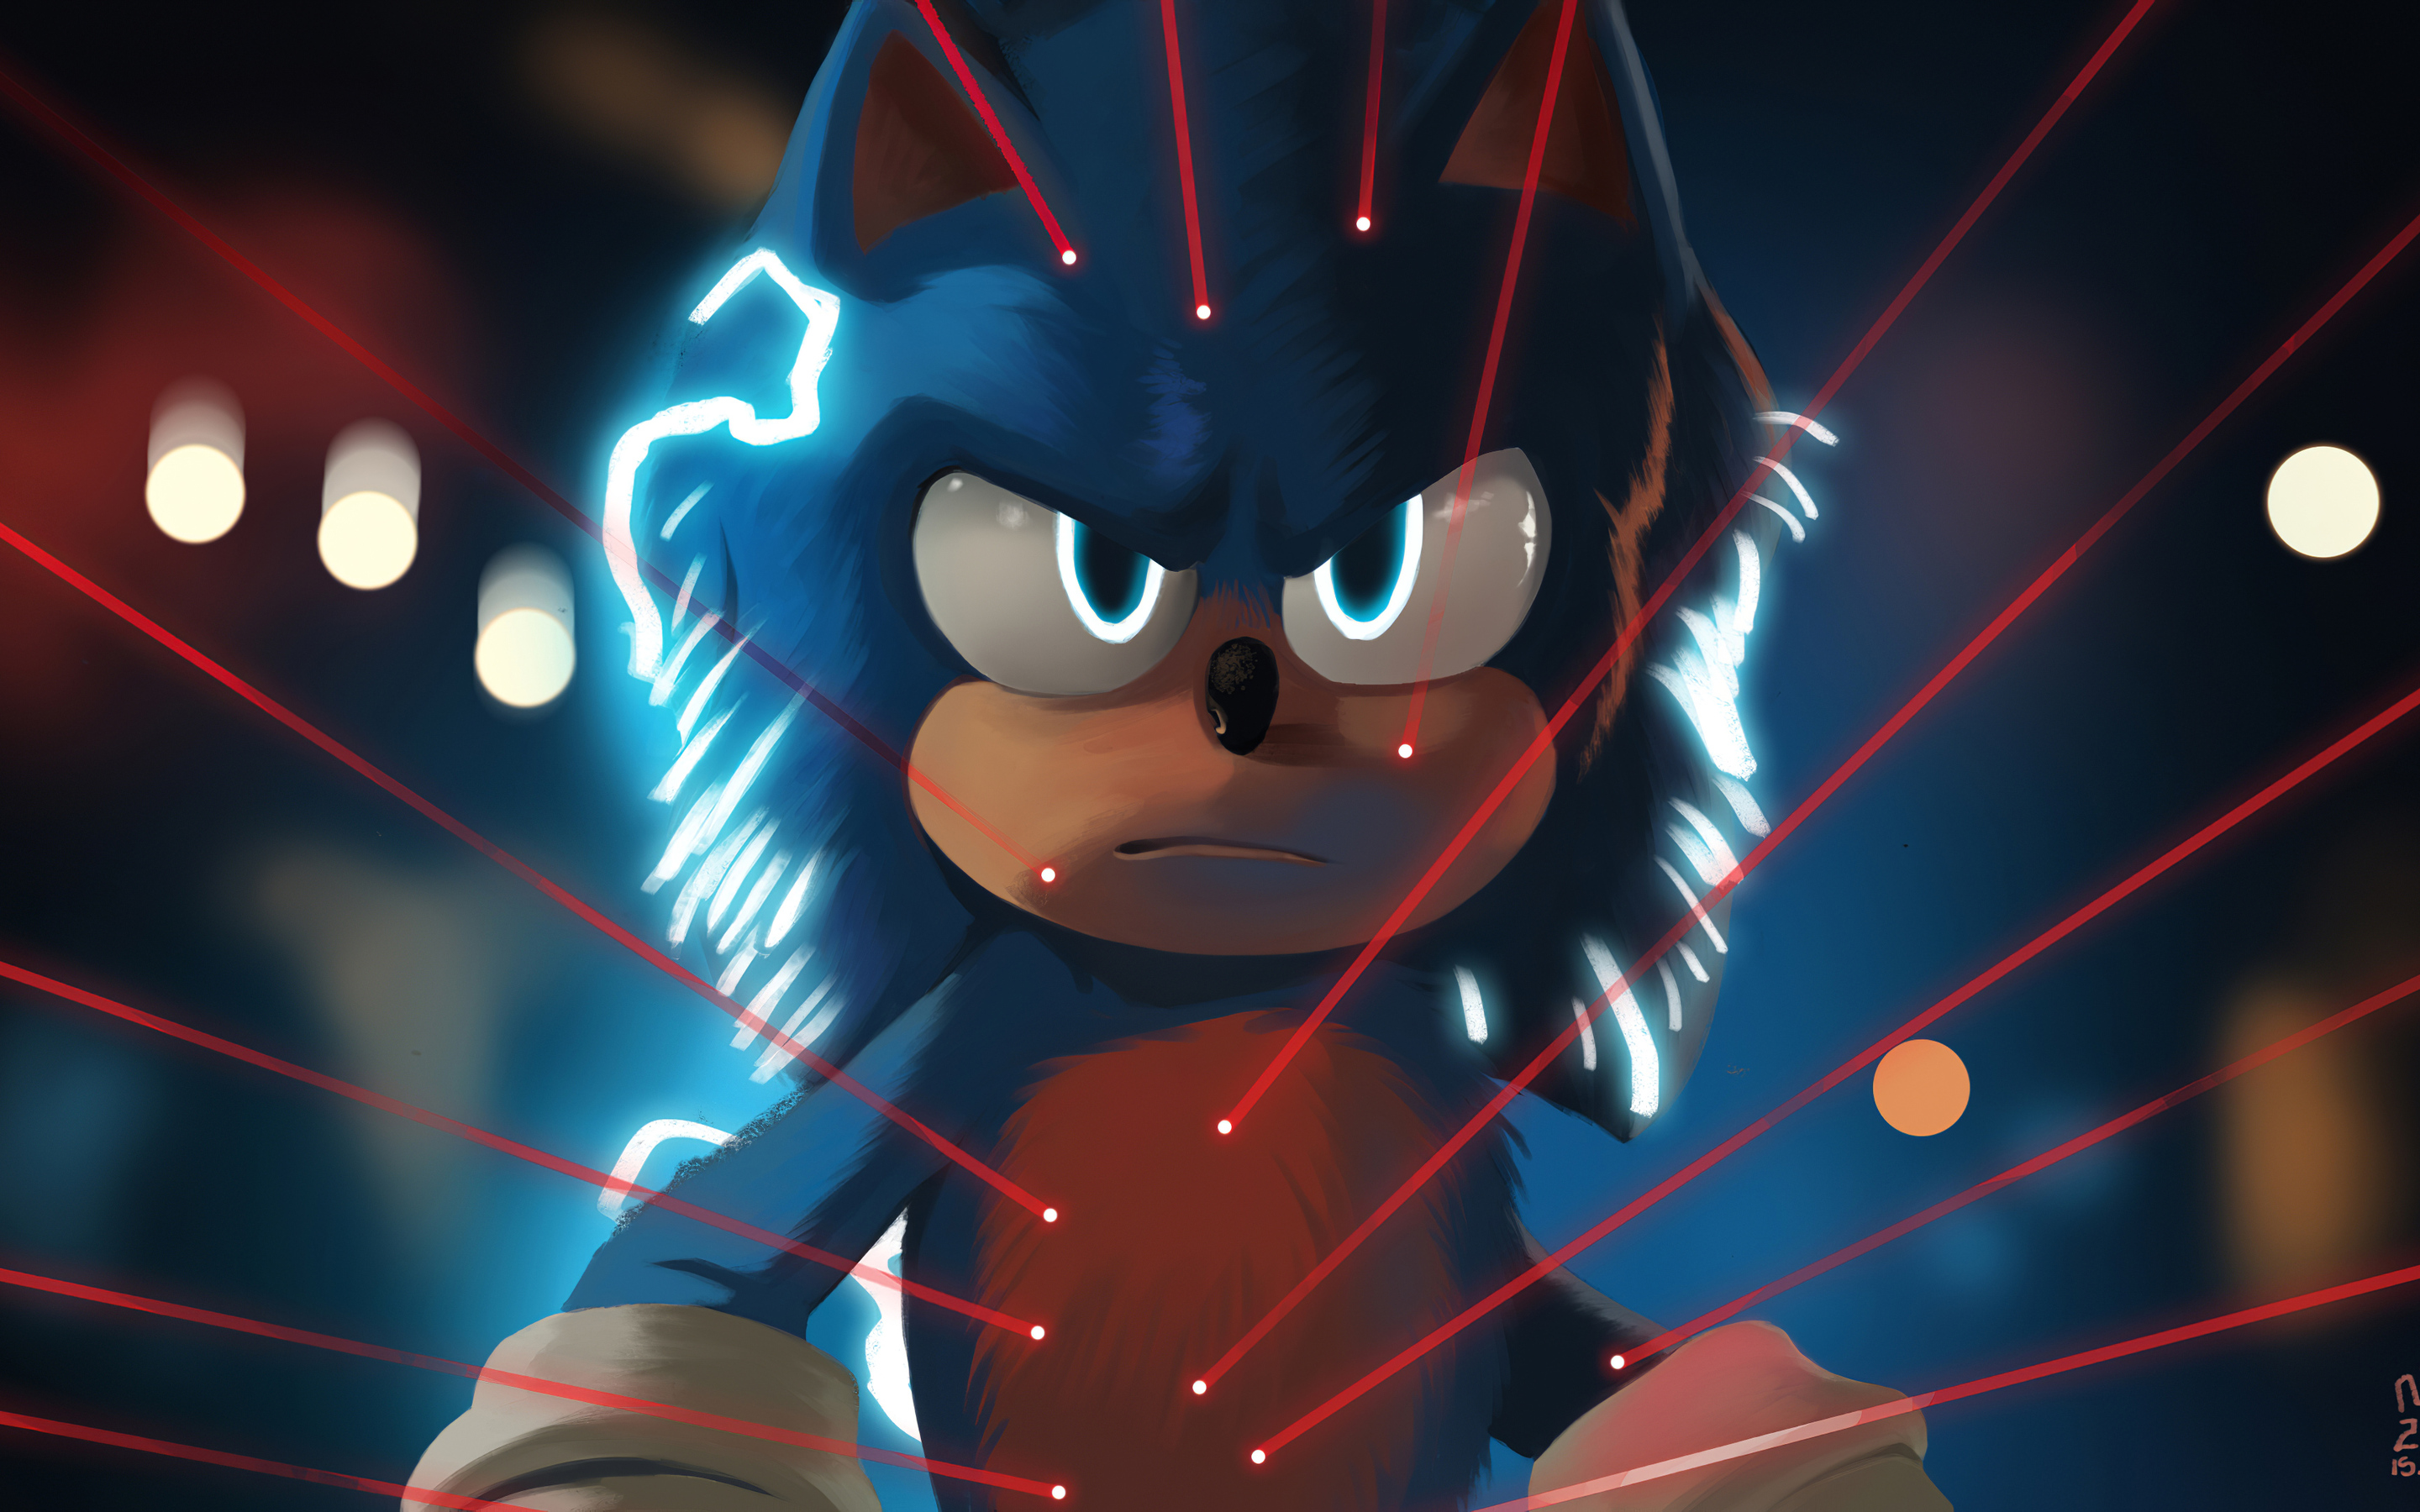 sonic-the-hedgehogart2020-0l.jpg